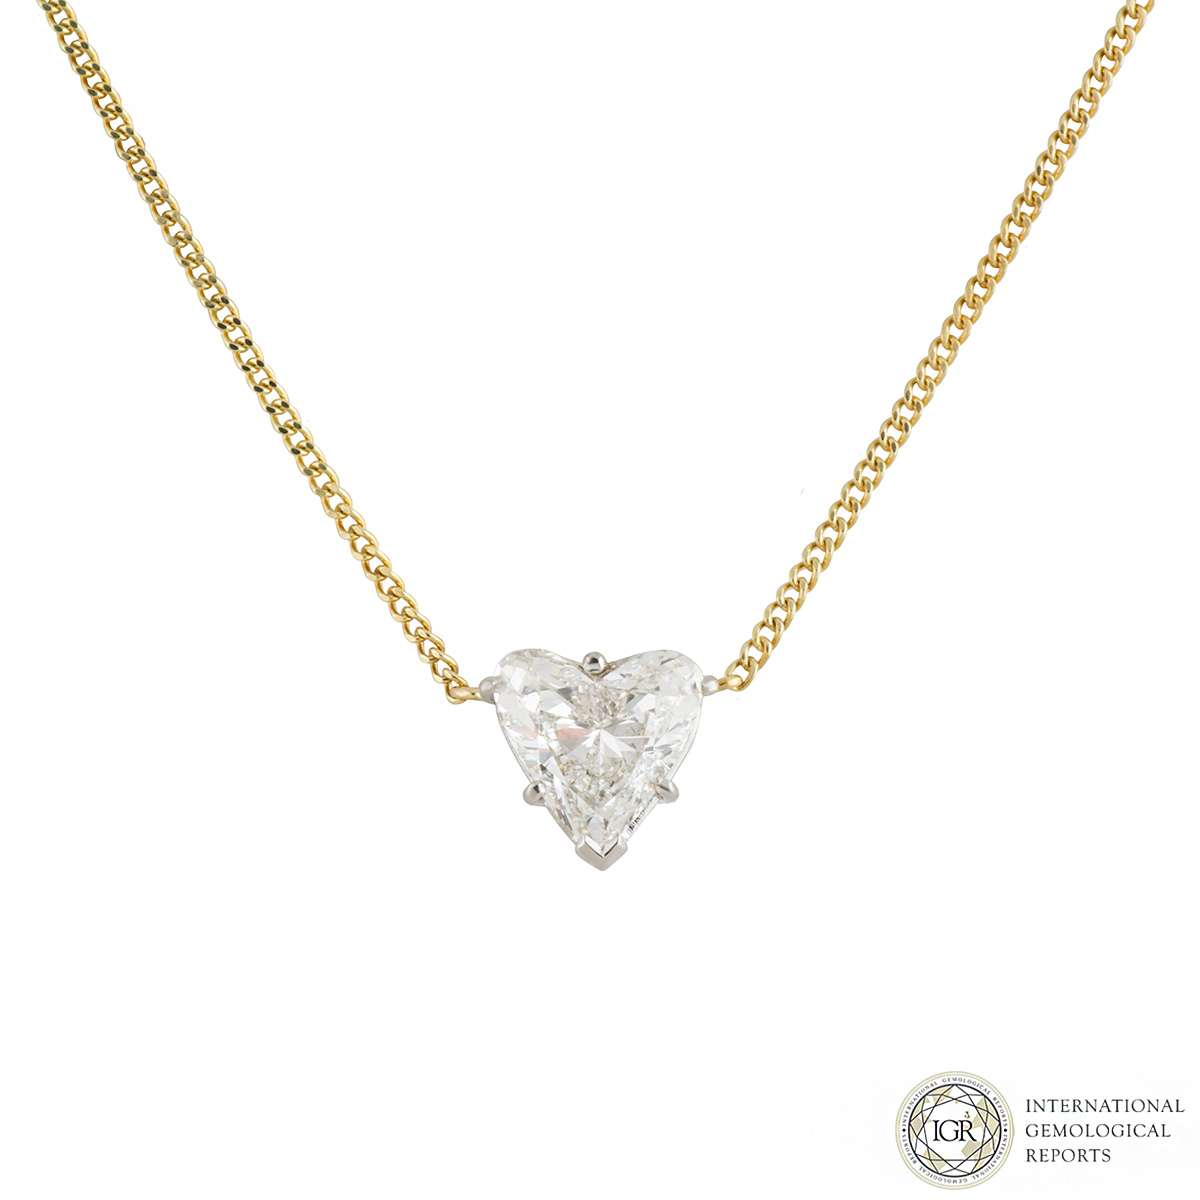 Heart Cut Diamond Pendant 1.78ct G/VS2